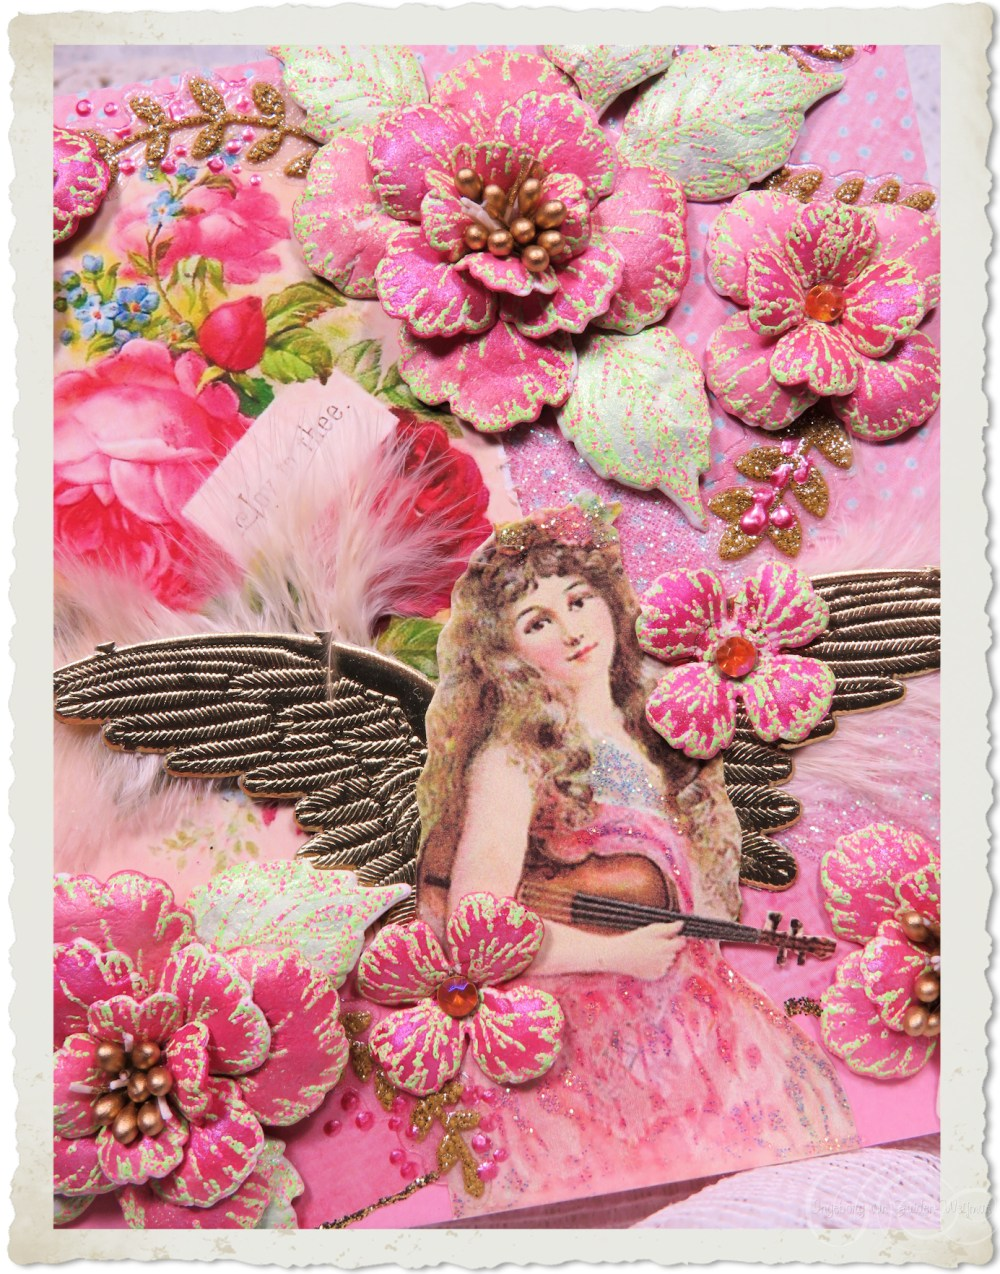 Details of handmade card with angel and Oakberry Lane flowers by Ingeborg van Zuiden